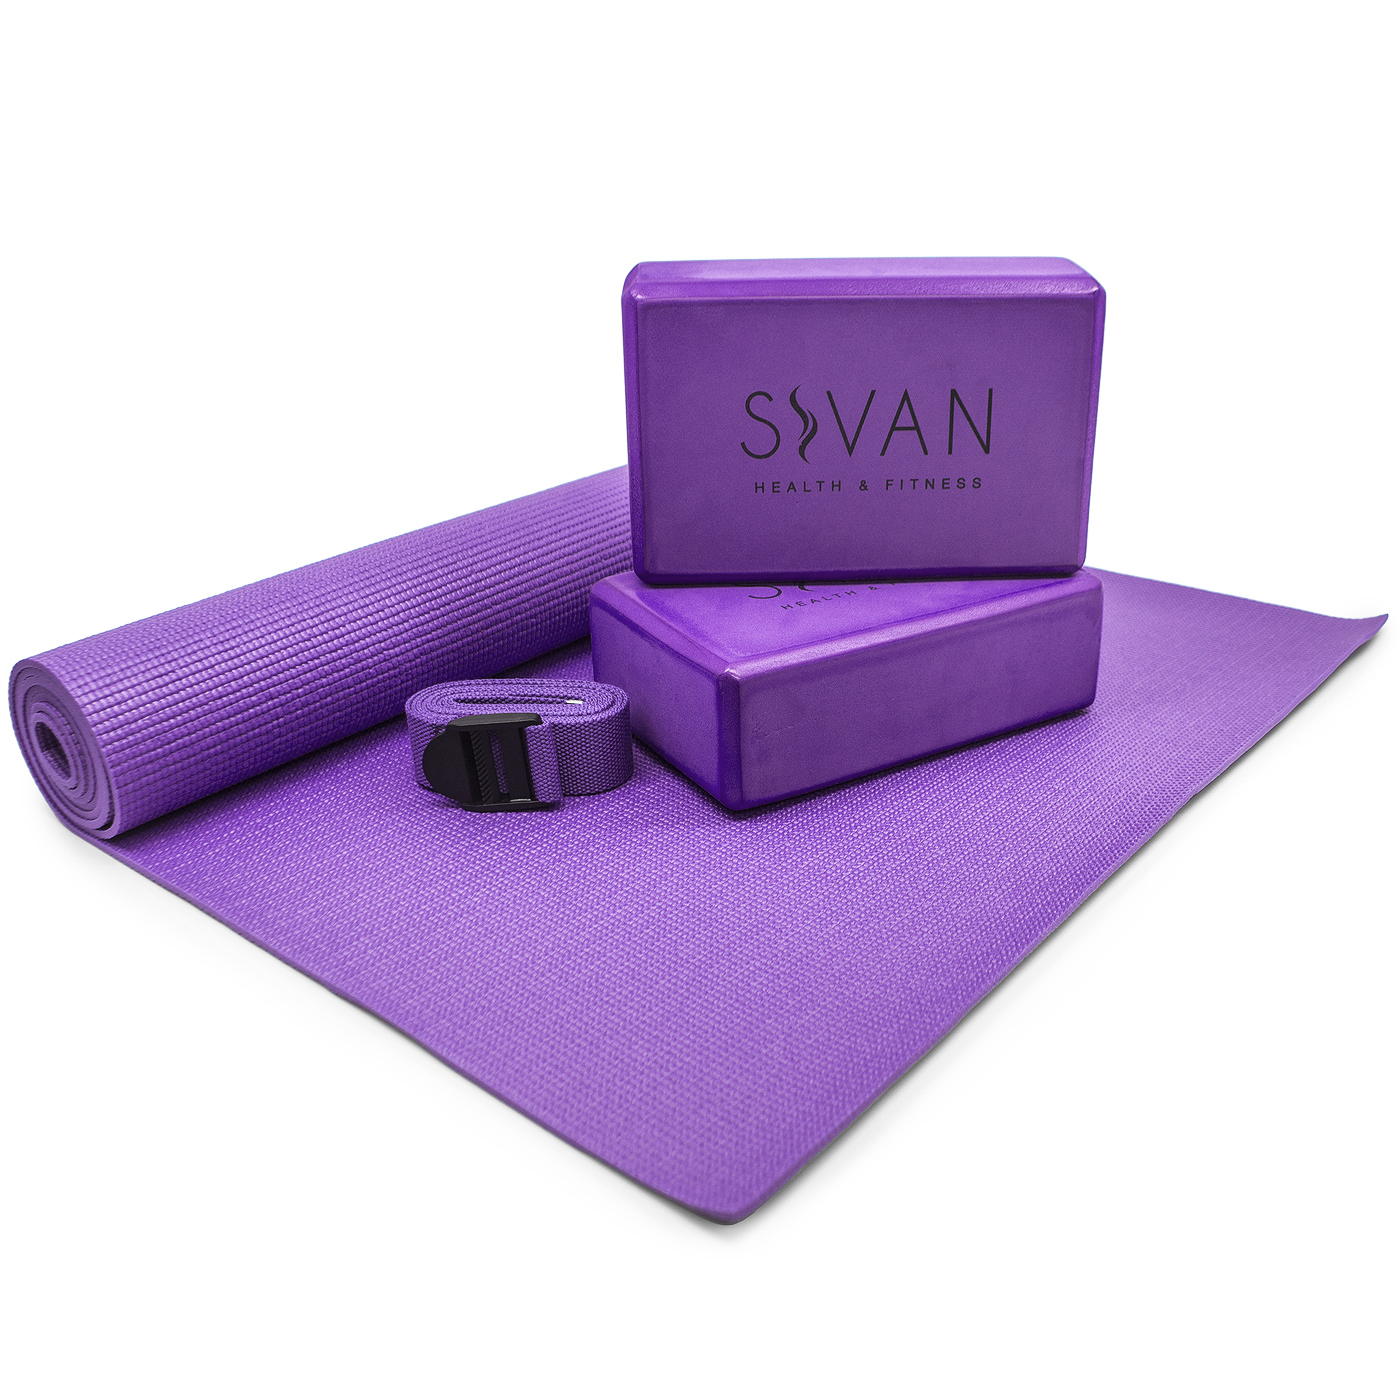 Sivan Health & Fitness Prepacked 5-Piece Yoga Kit, Purple